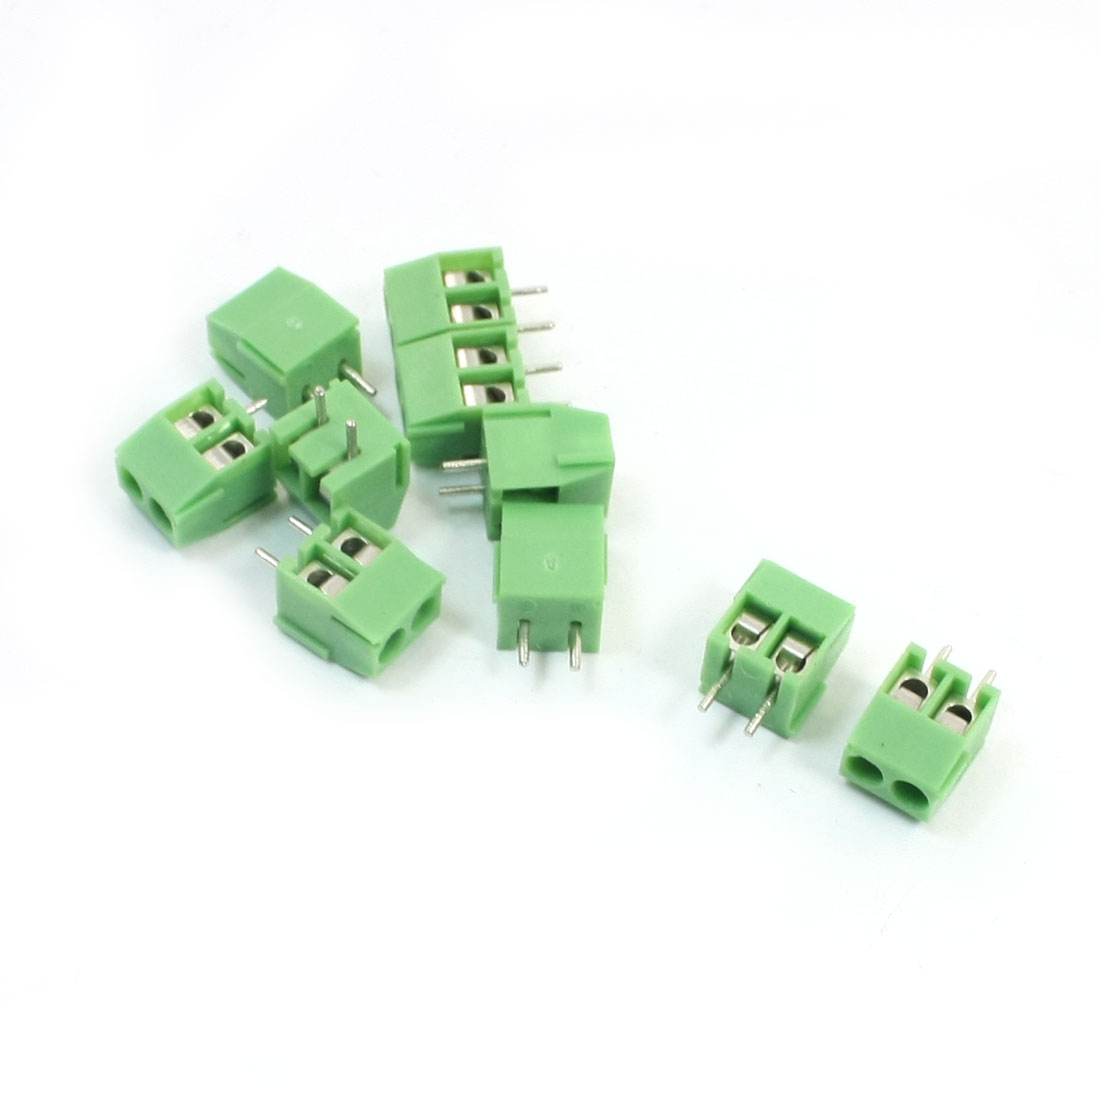 300V 10A 3.6mm Pitch Pluggable Type 2-Position PCB Mounting Plastic Screw Terminal Block Connector Green 10Pcs